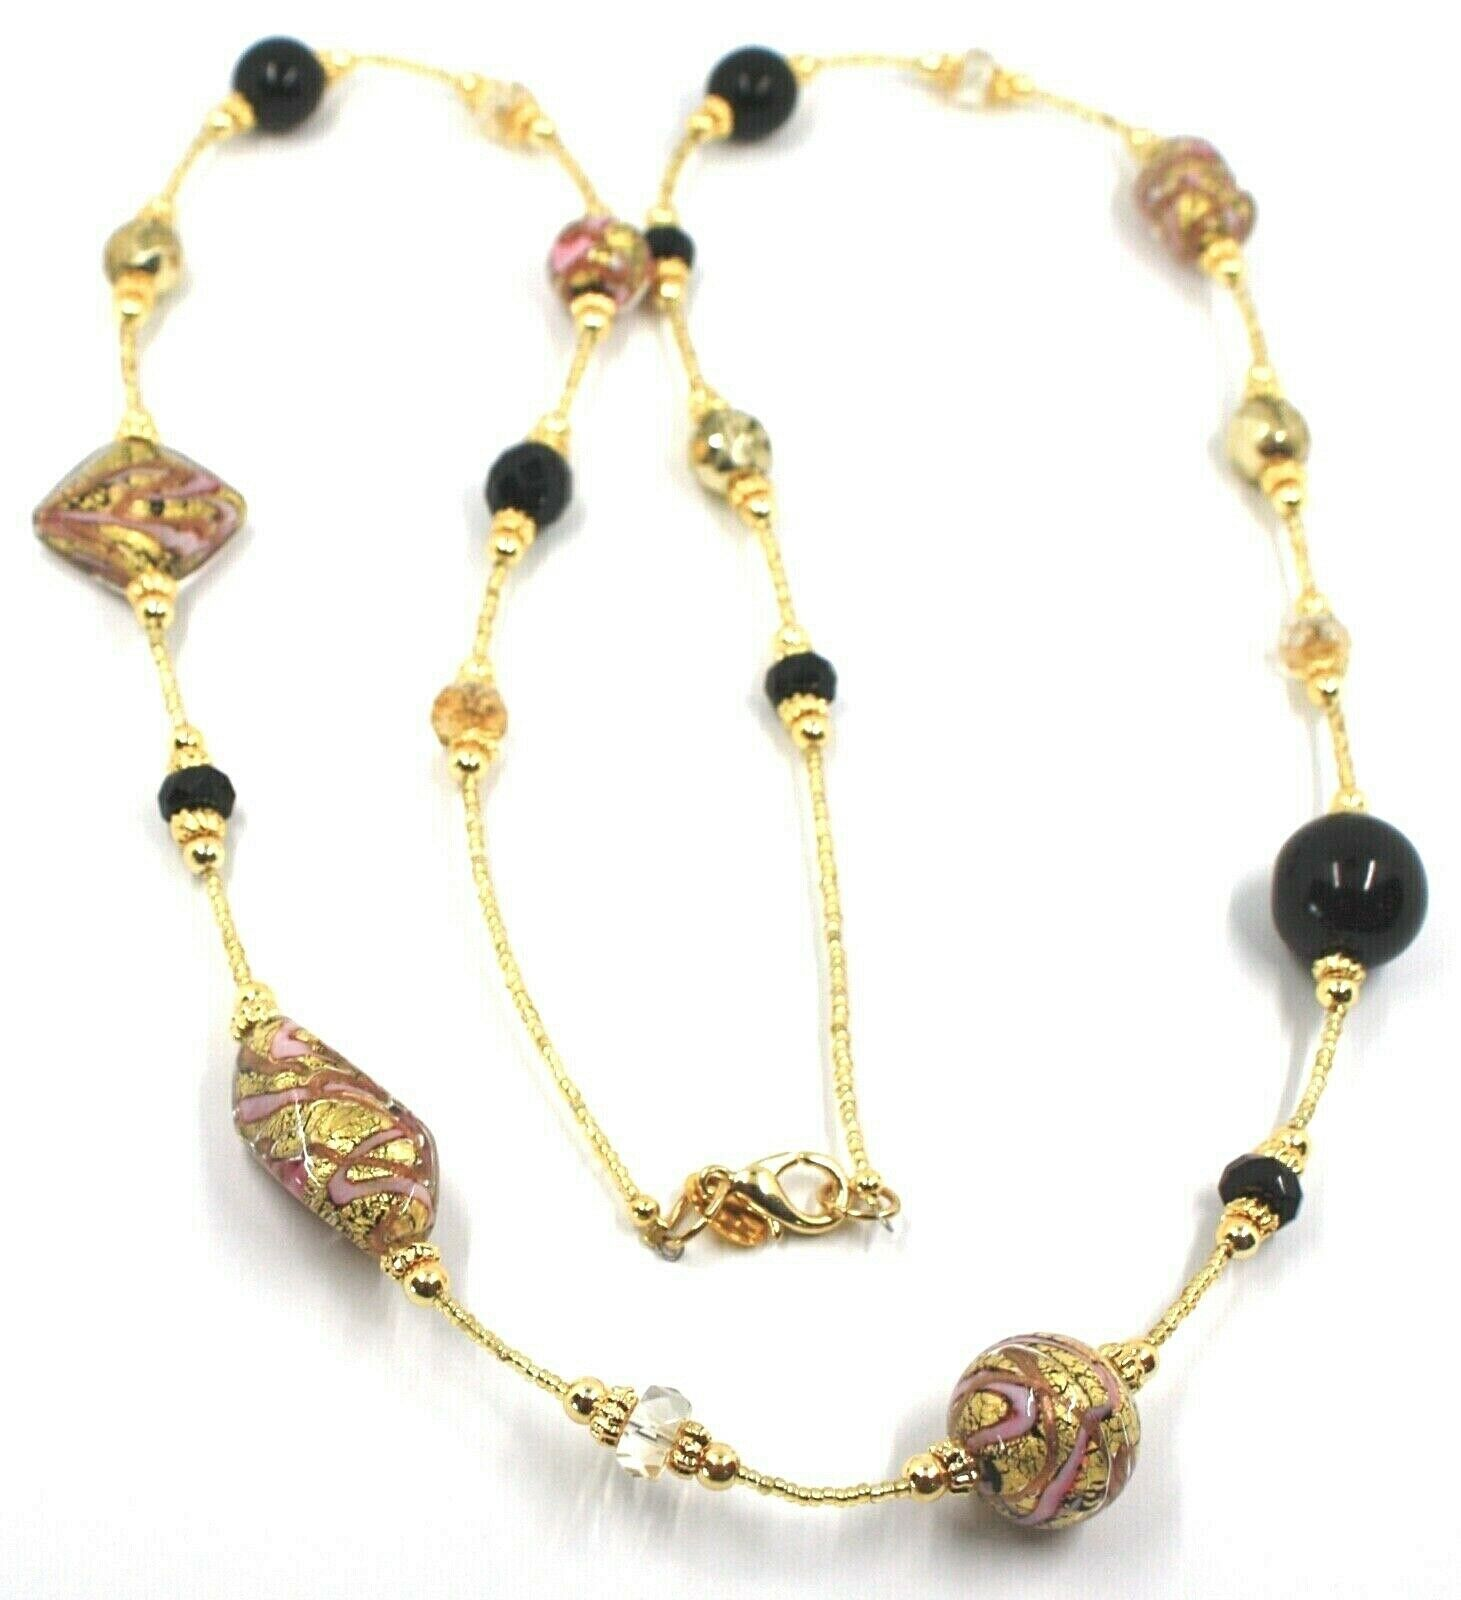 LONG 90cm NECKLACE PINK & YELLOW STRIPED MURANO GLASS SPHERE NUGGET, GOLD LEAF